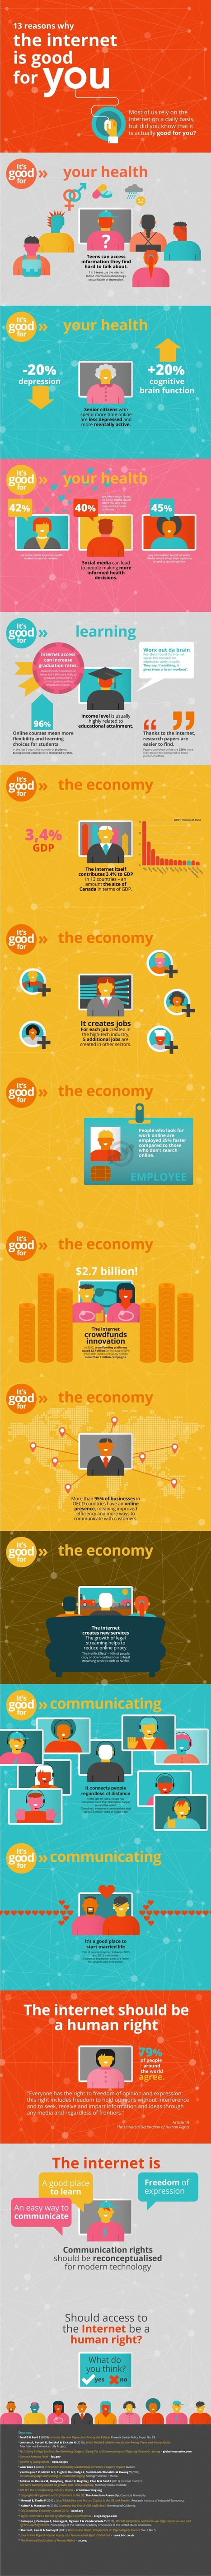 13 reasons why the internet is good for you | infographic | Inteligencia Colectiva | Scoop.it